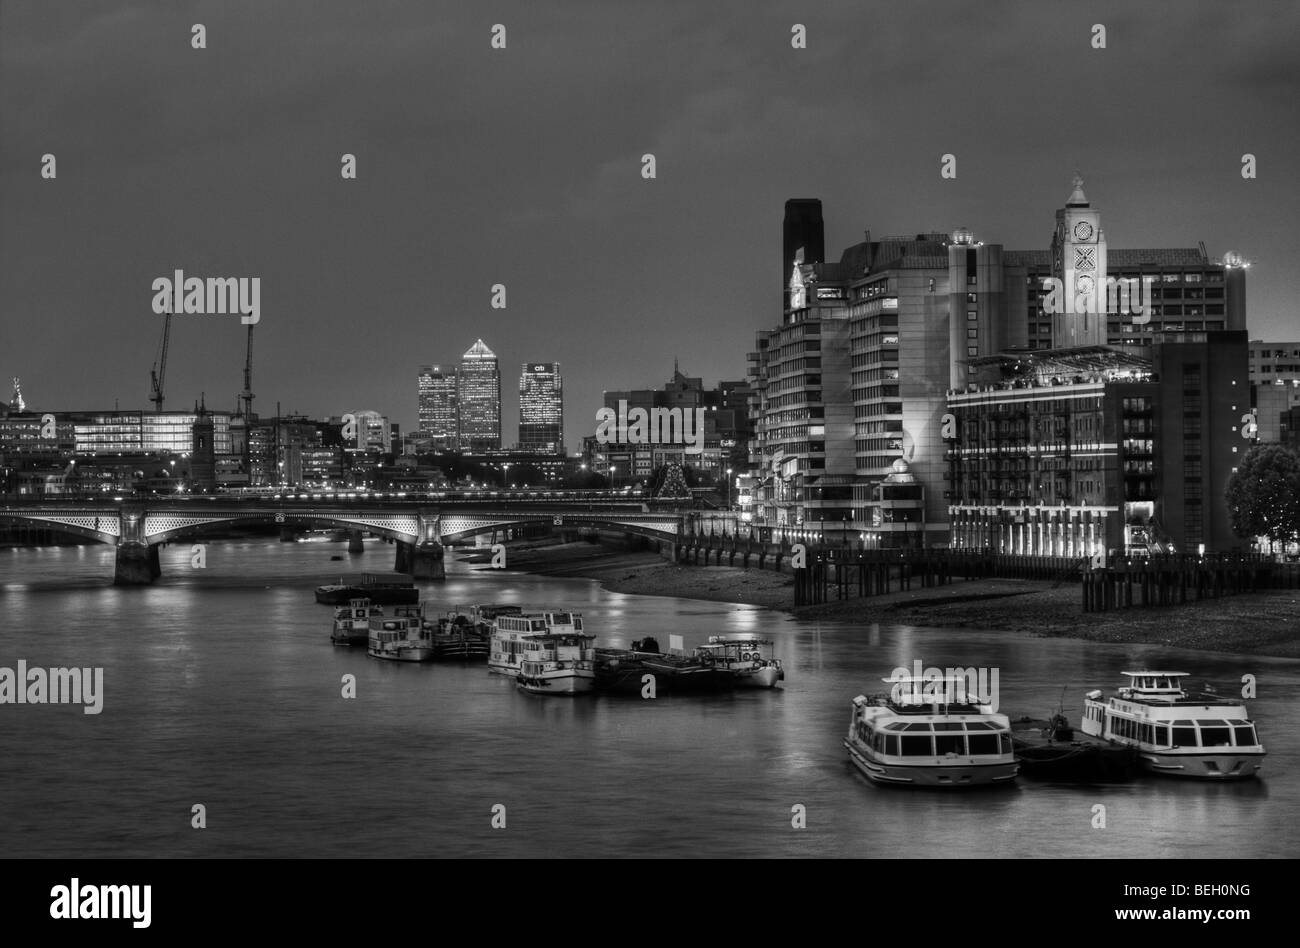 Oxo Cafe on the Southbank and Docklands viewed at night from Waterloo Bridge in London England. - Stock Image